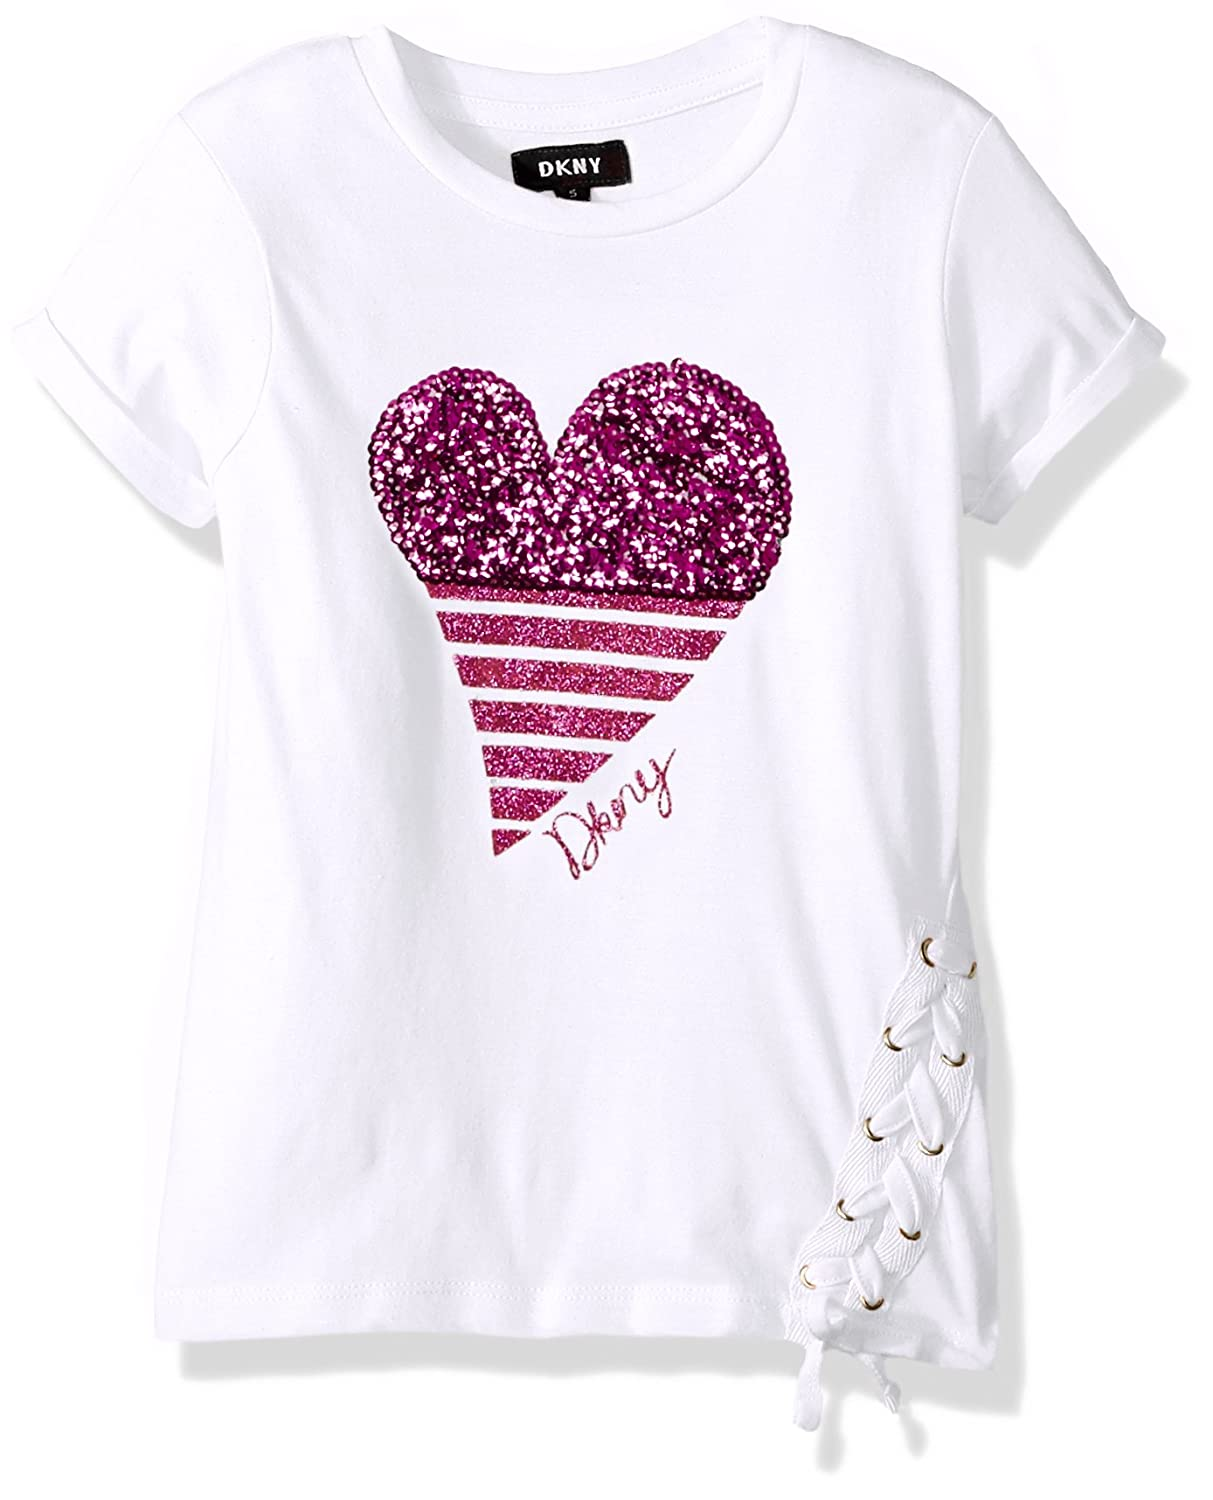 DKNY Girl's Short Sleeve T-Shirt